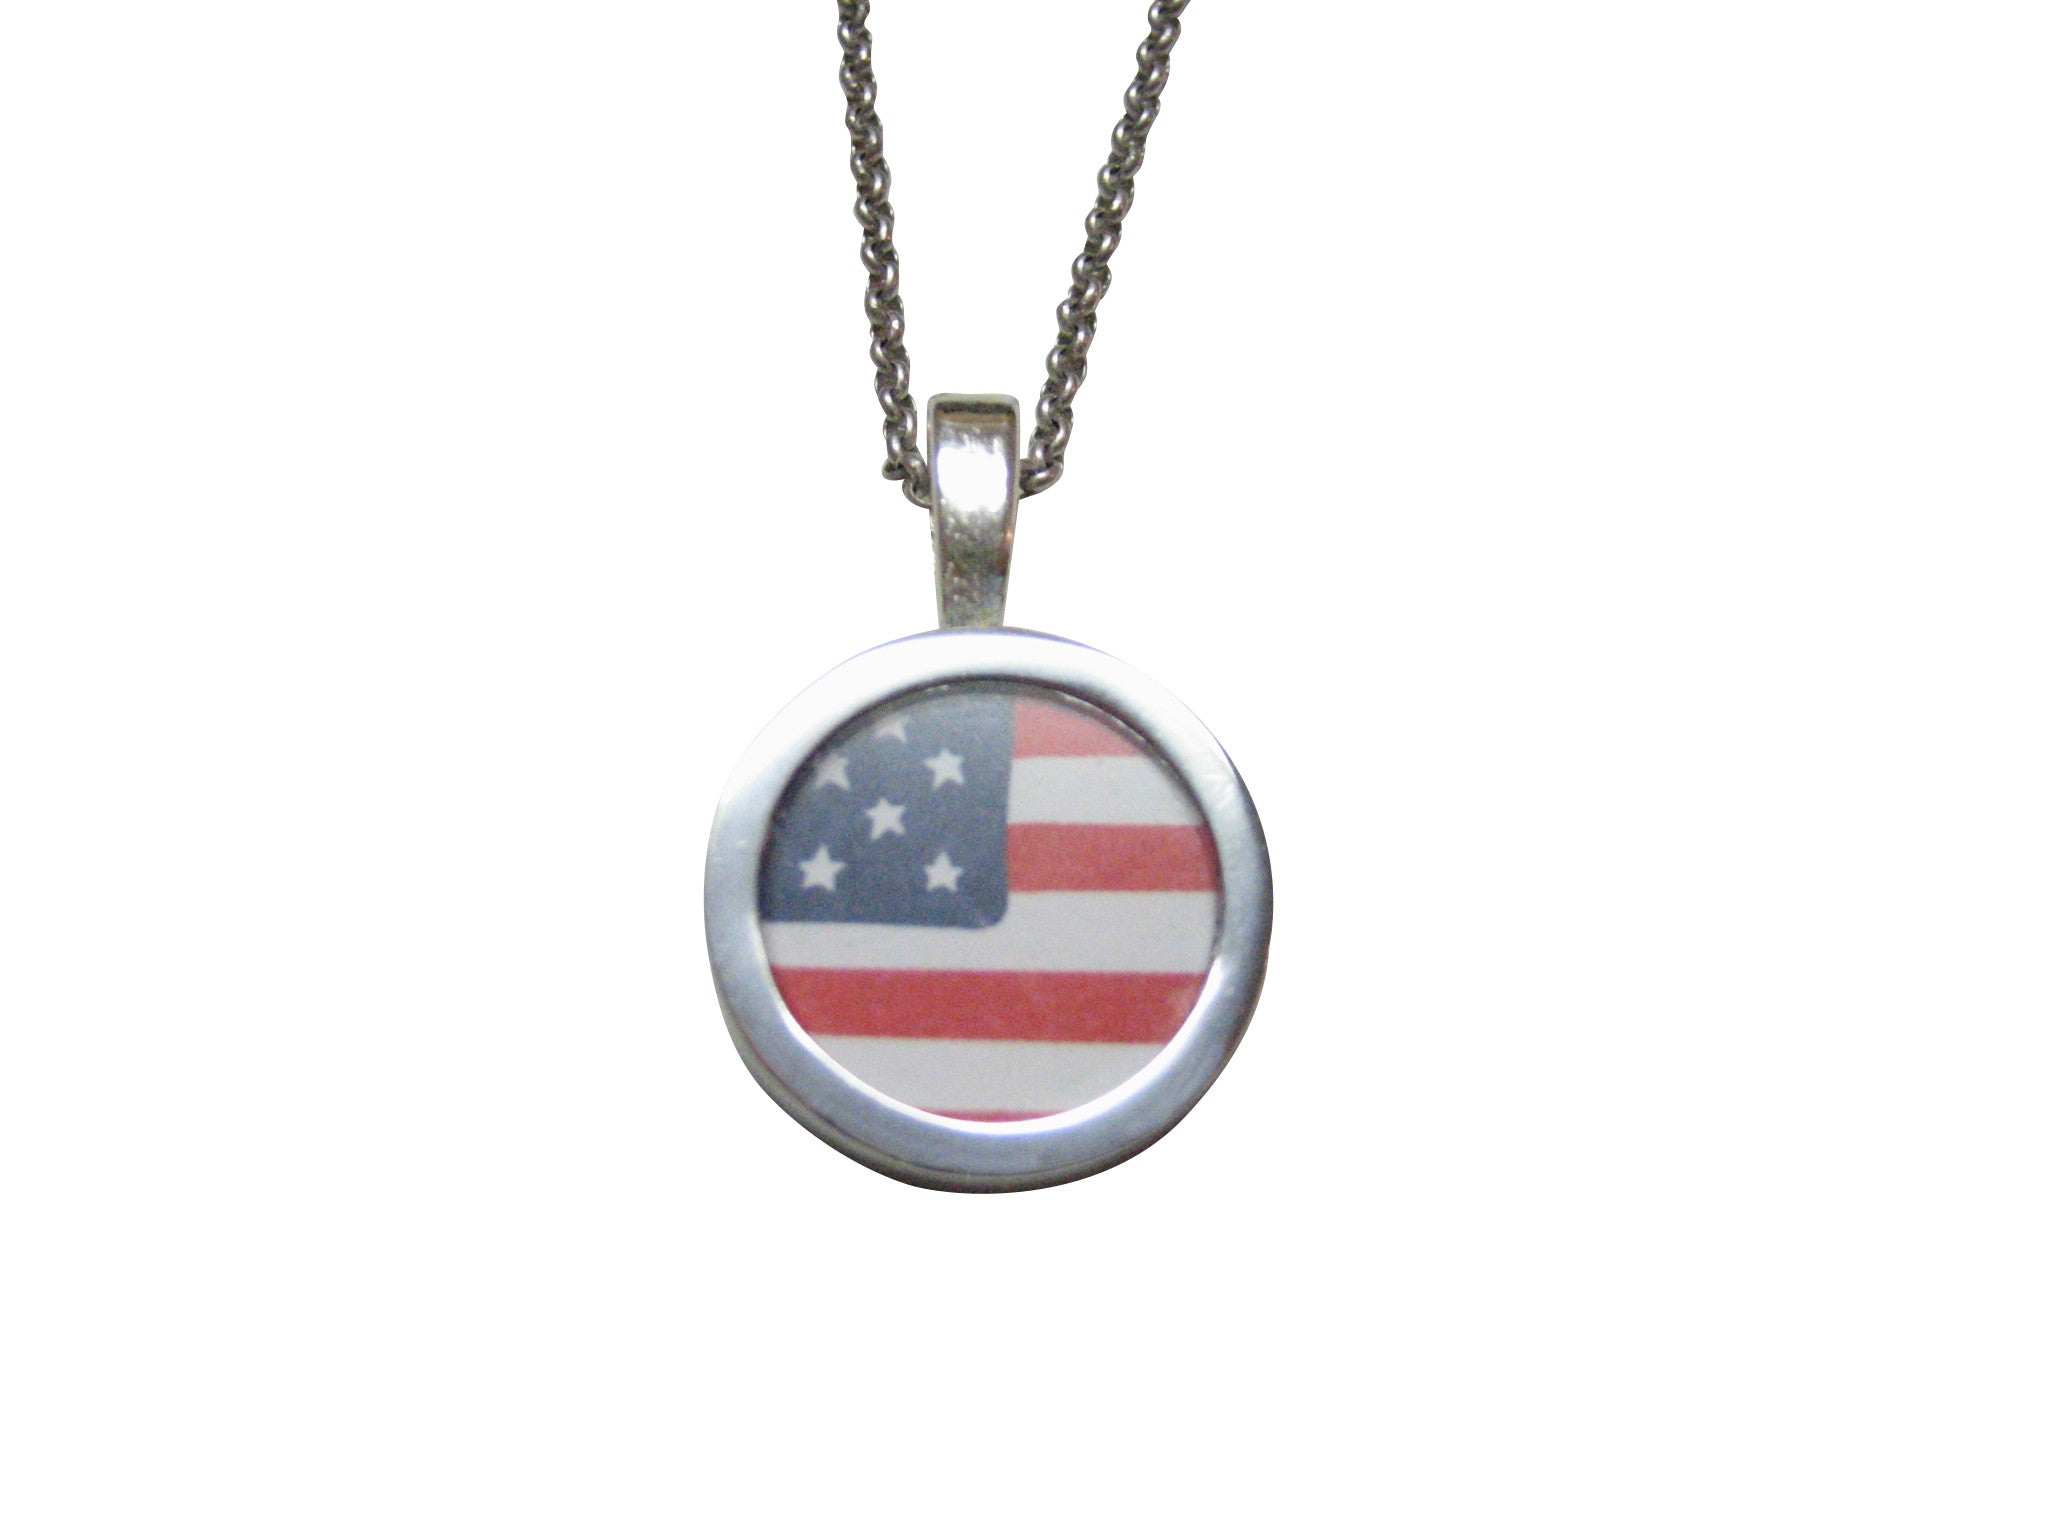 stars dog holidays pb apple collections jewelry pendant american and usa chains necklace key jelly patriot stripes high gift men freedom keychains necklaces products flag tag quality patriotic